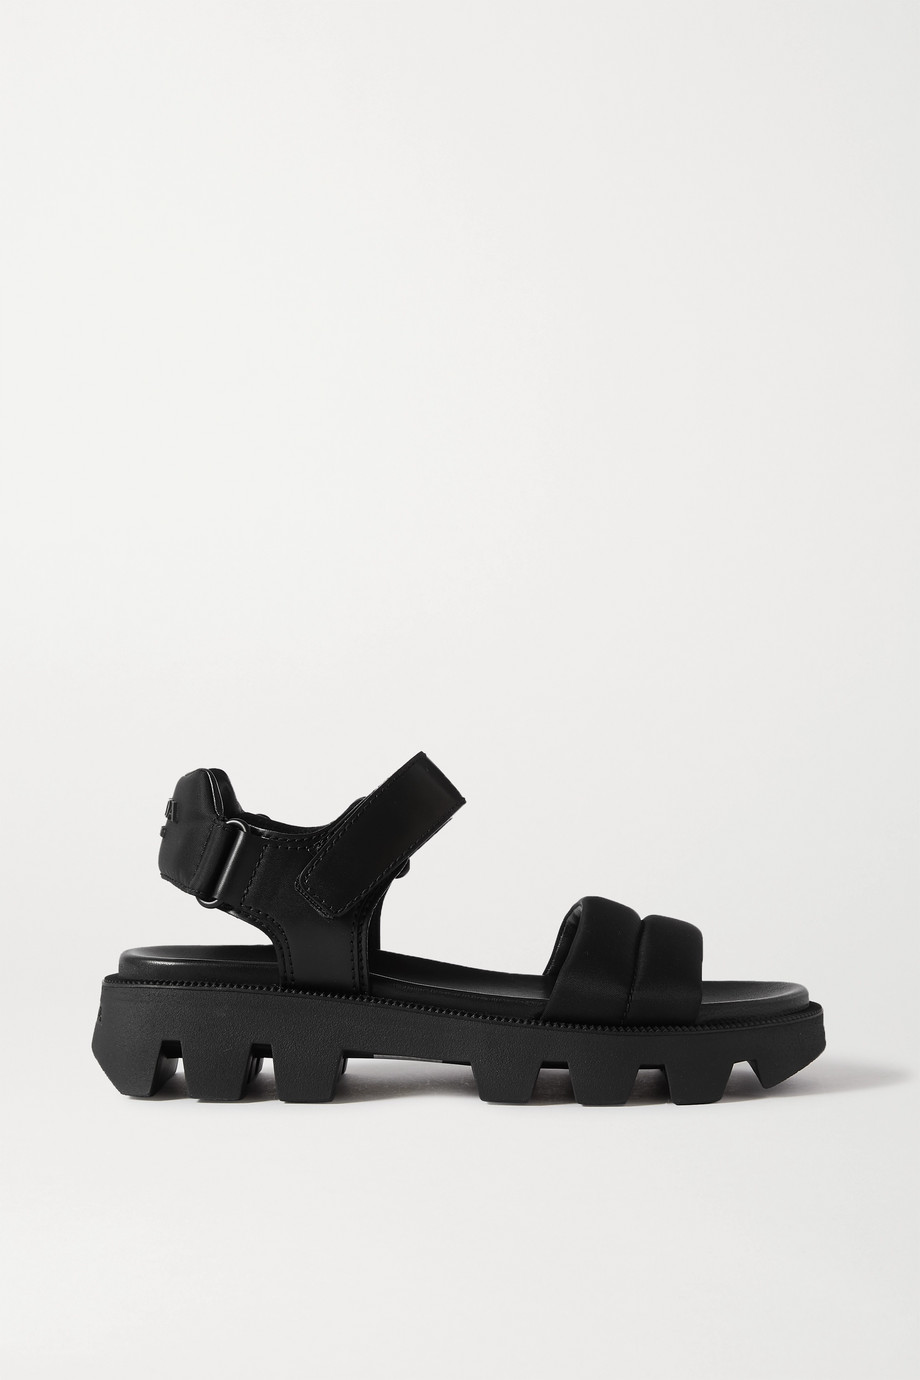 Prada Leather and nylon sandals